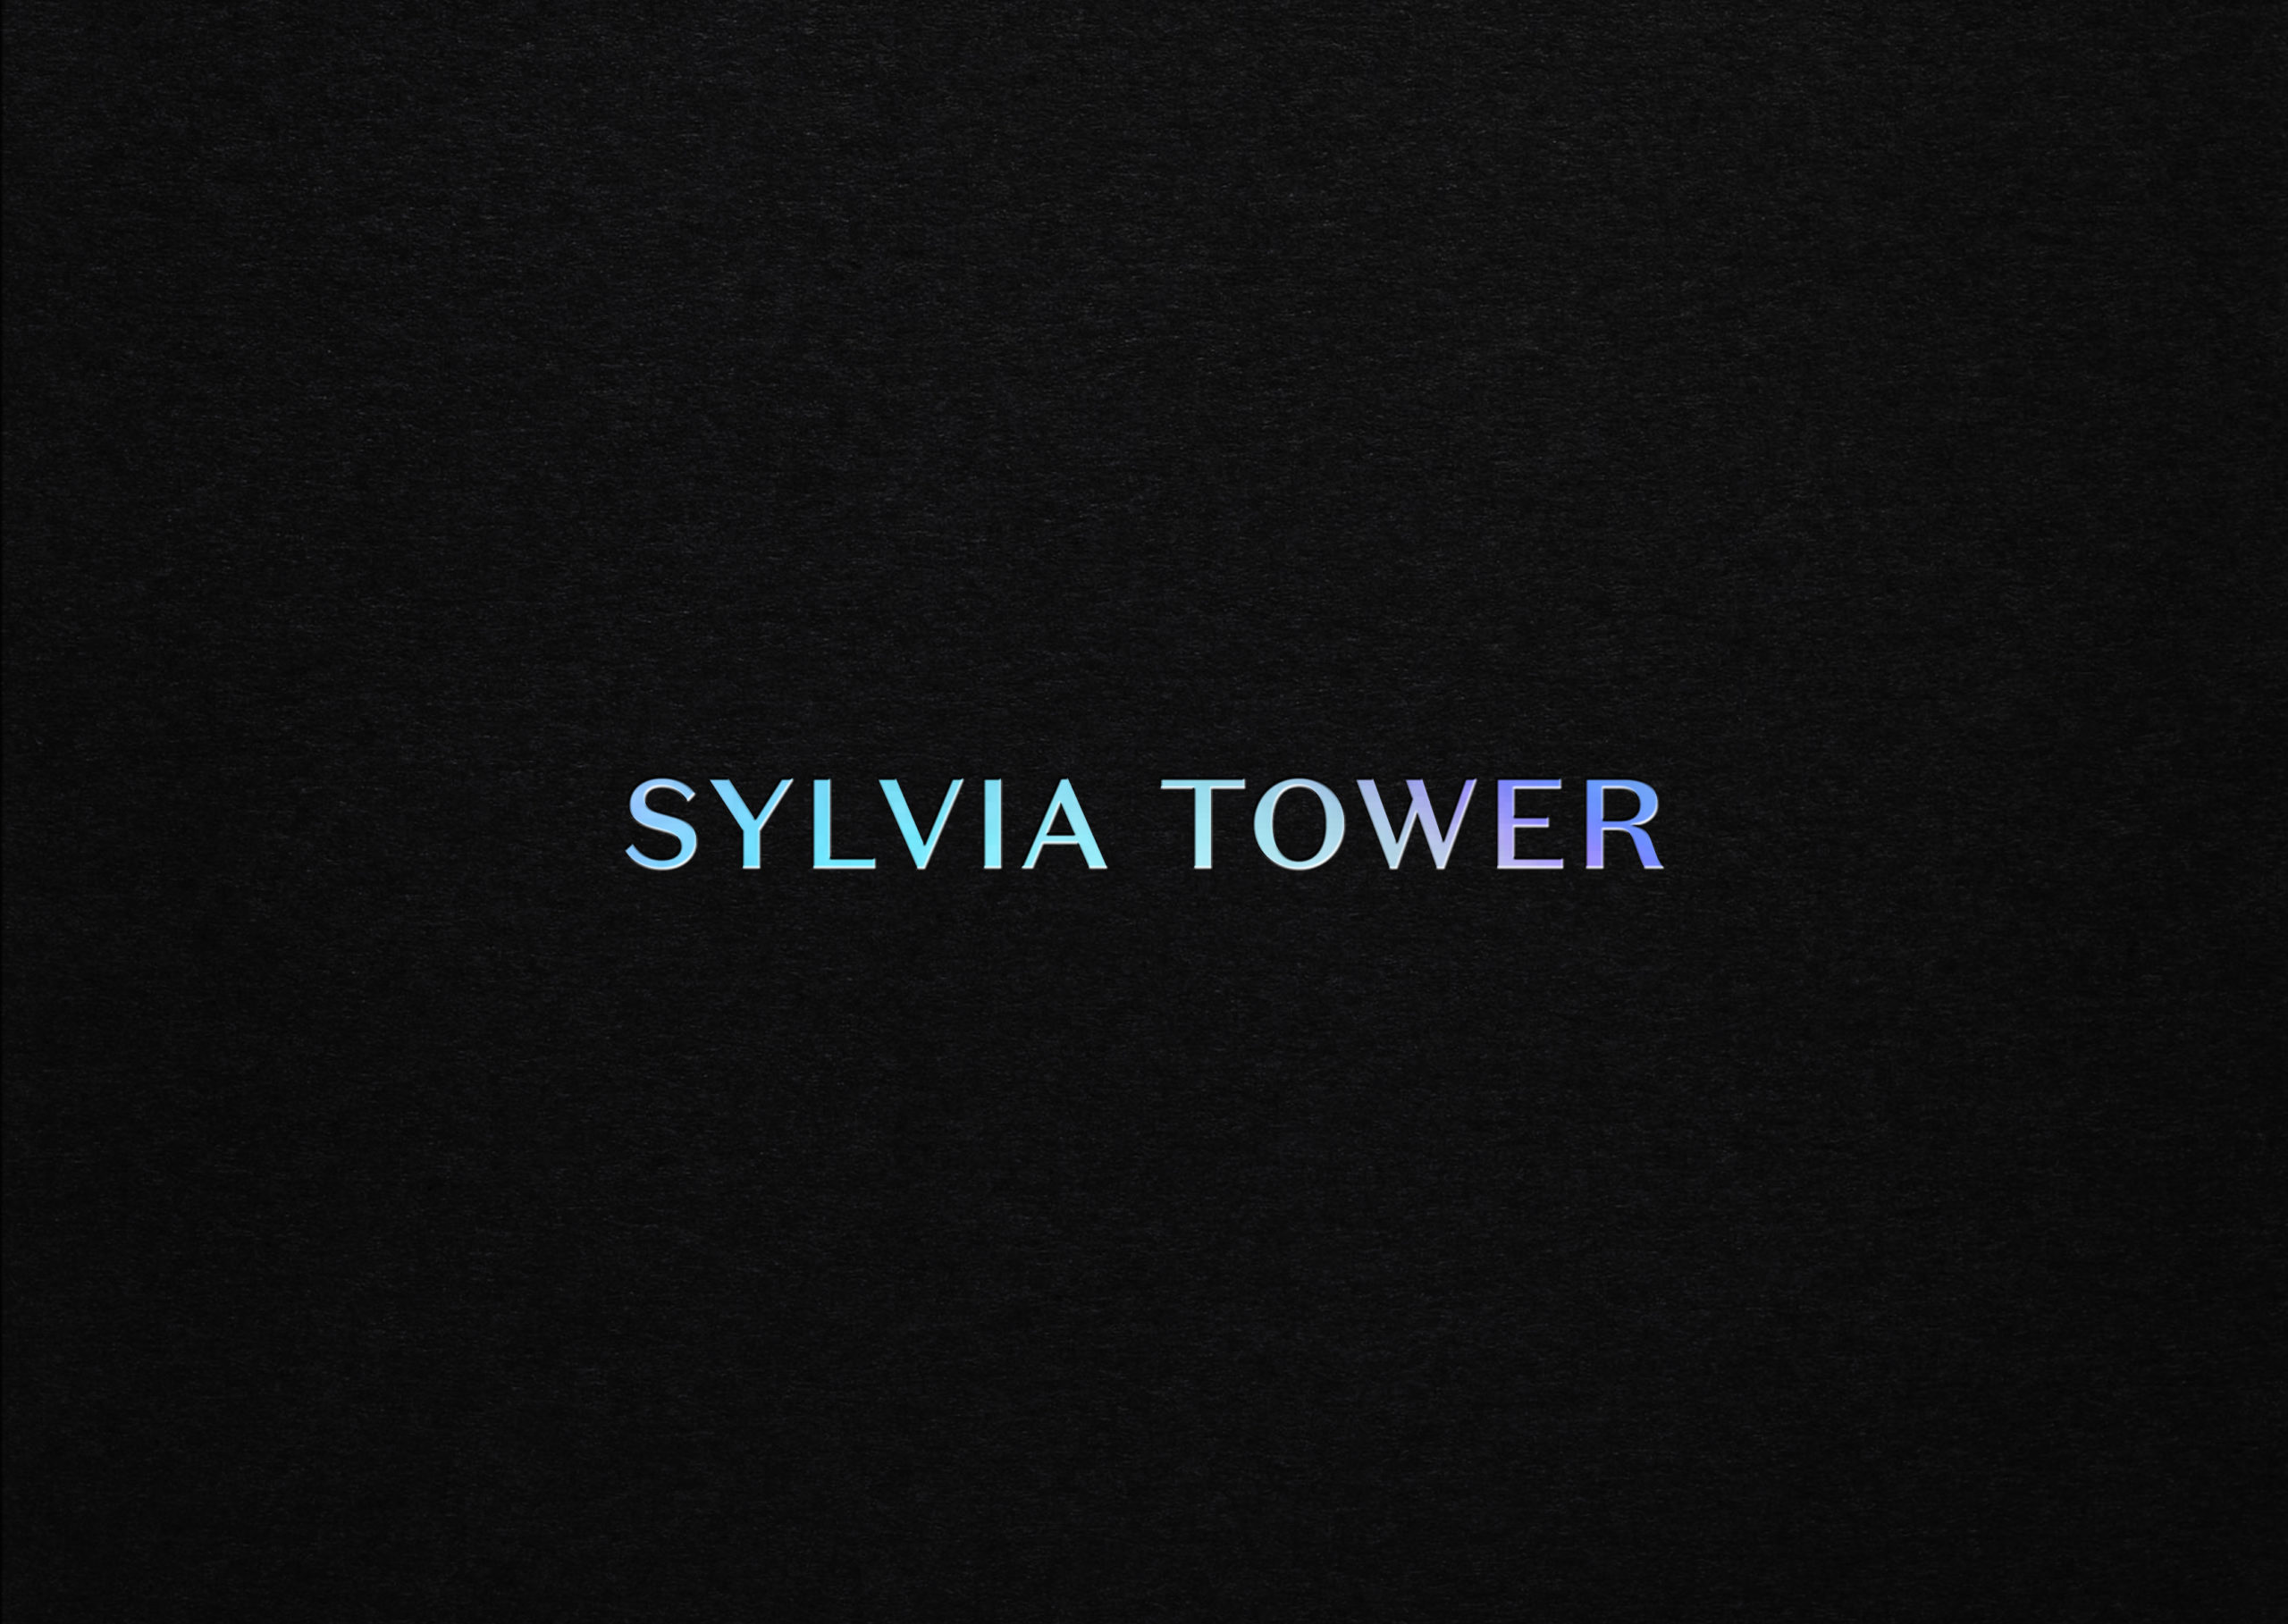 Kiwi Property – Sylvia Tower branding their new commercial development, Logo brand